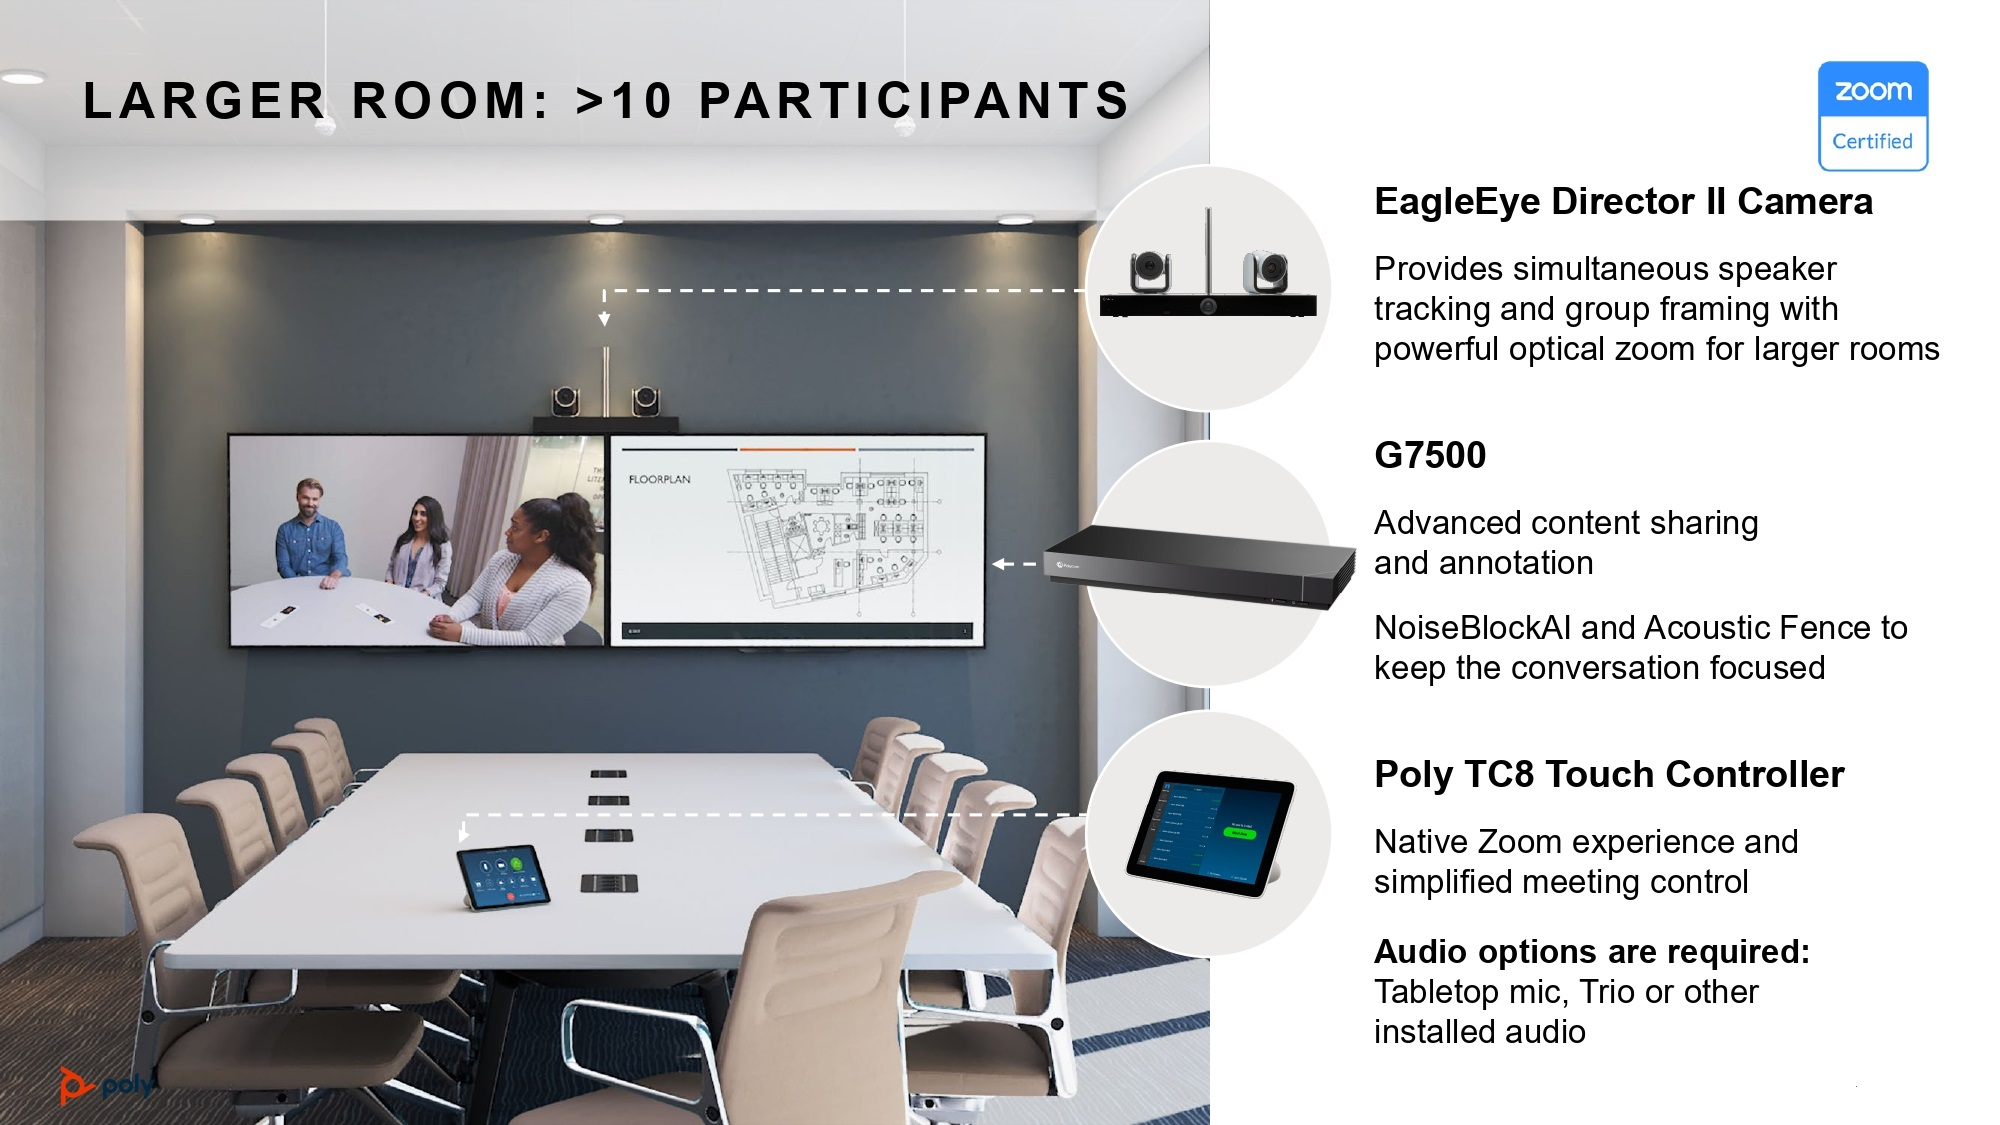 Large Room Video Conferencing Solutions From Jabra, Poly, Polycom and Plantronics | LIONWARE